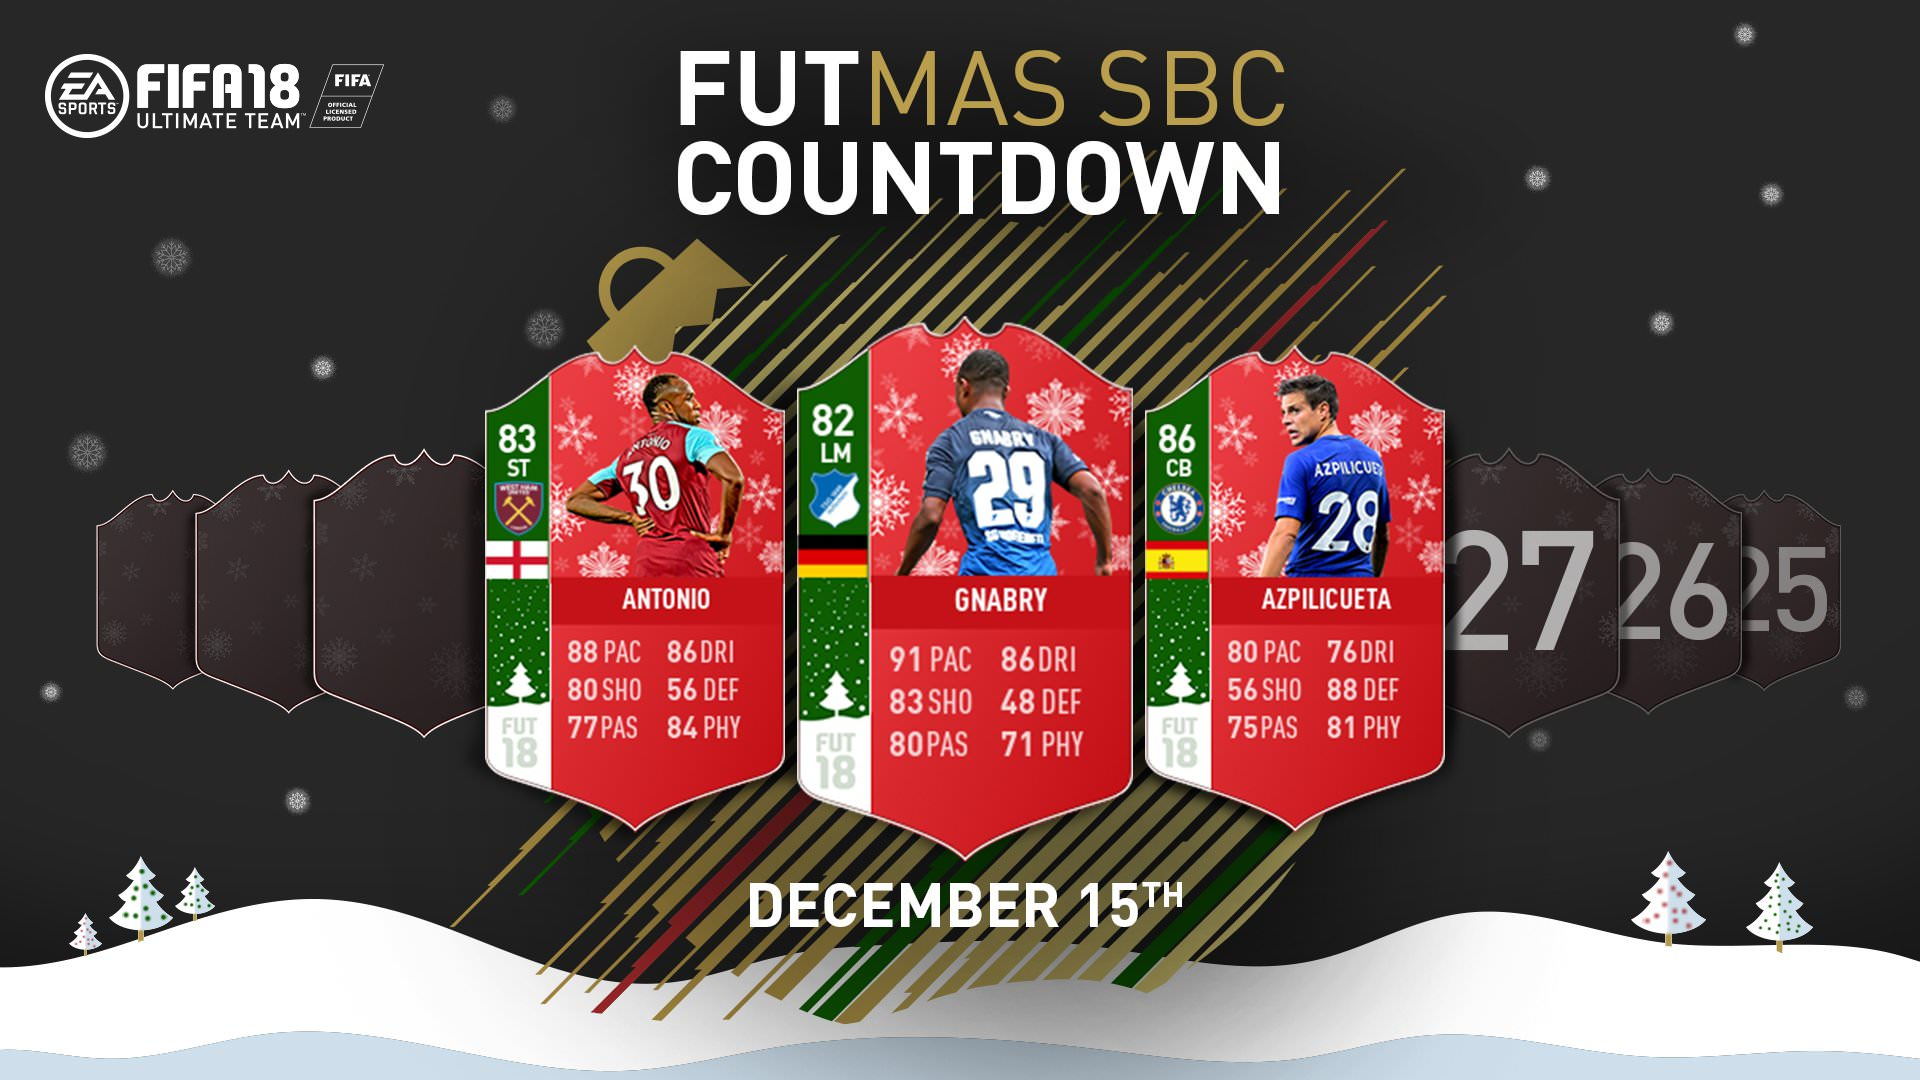 FUTmas Players